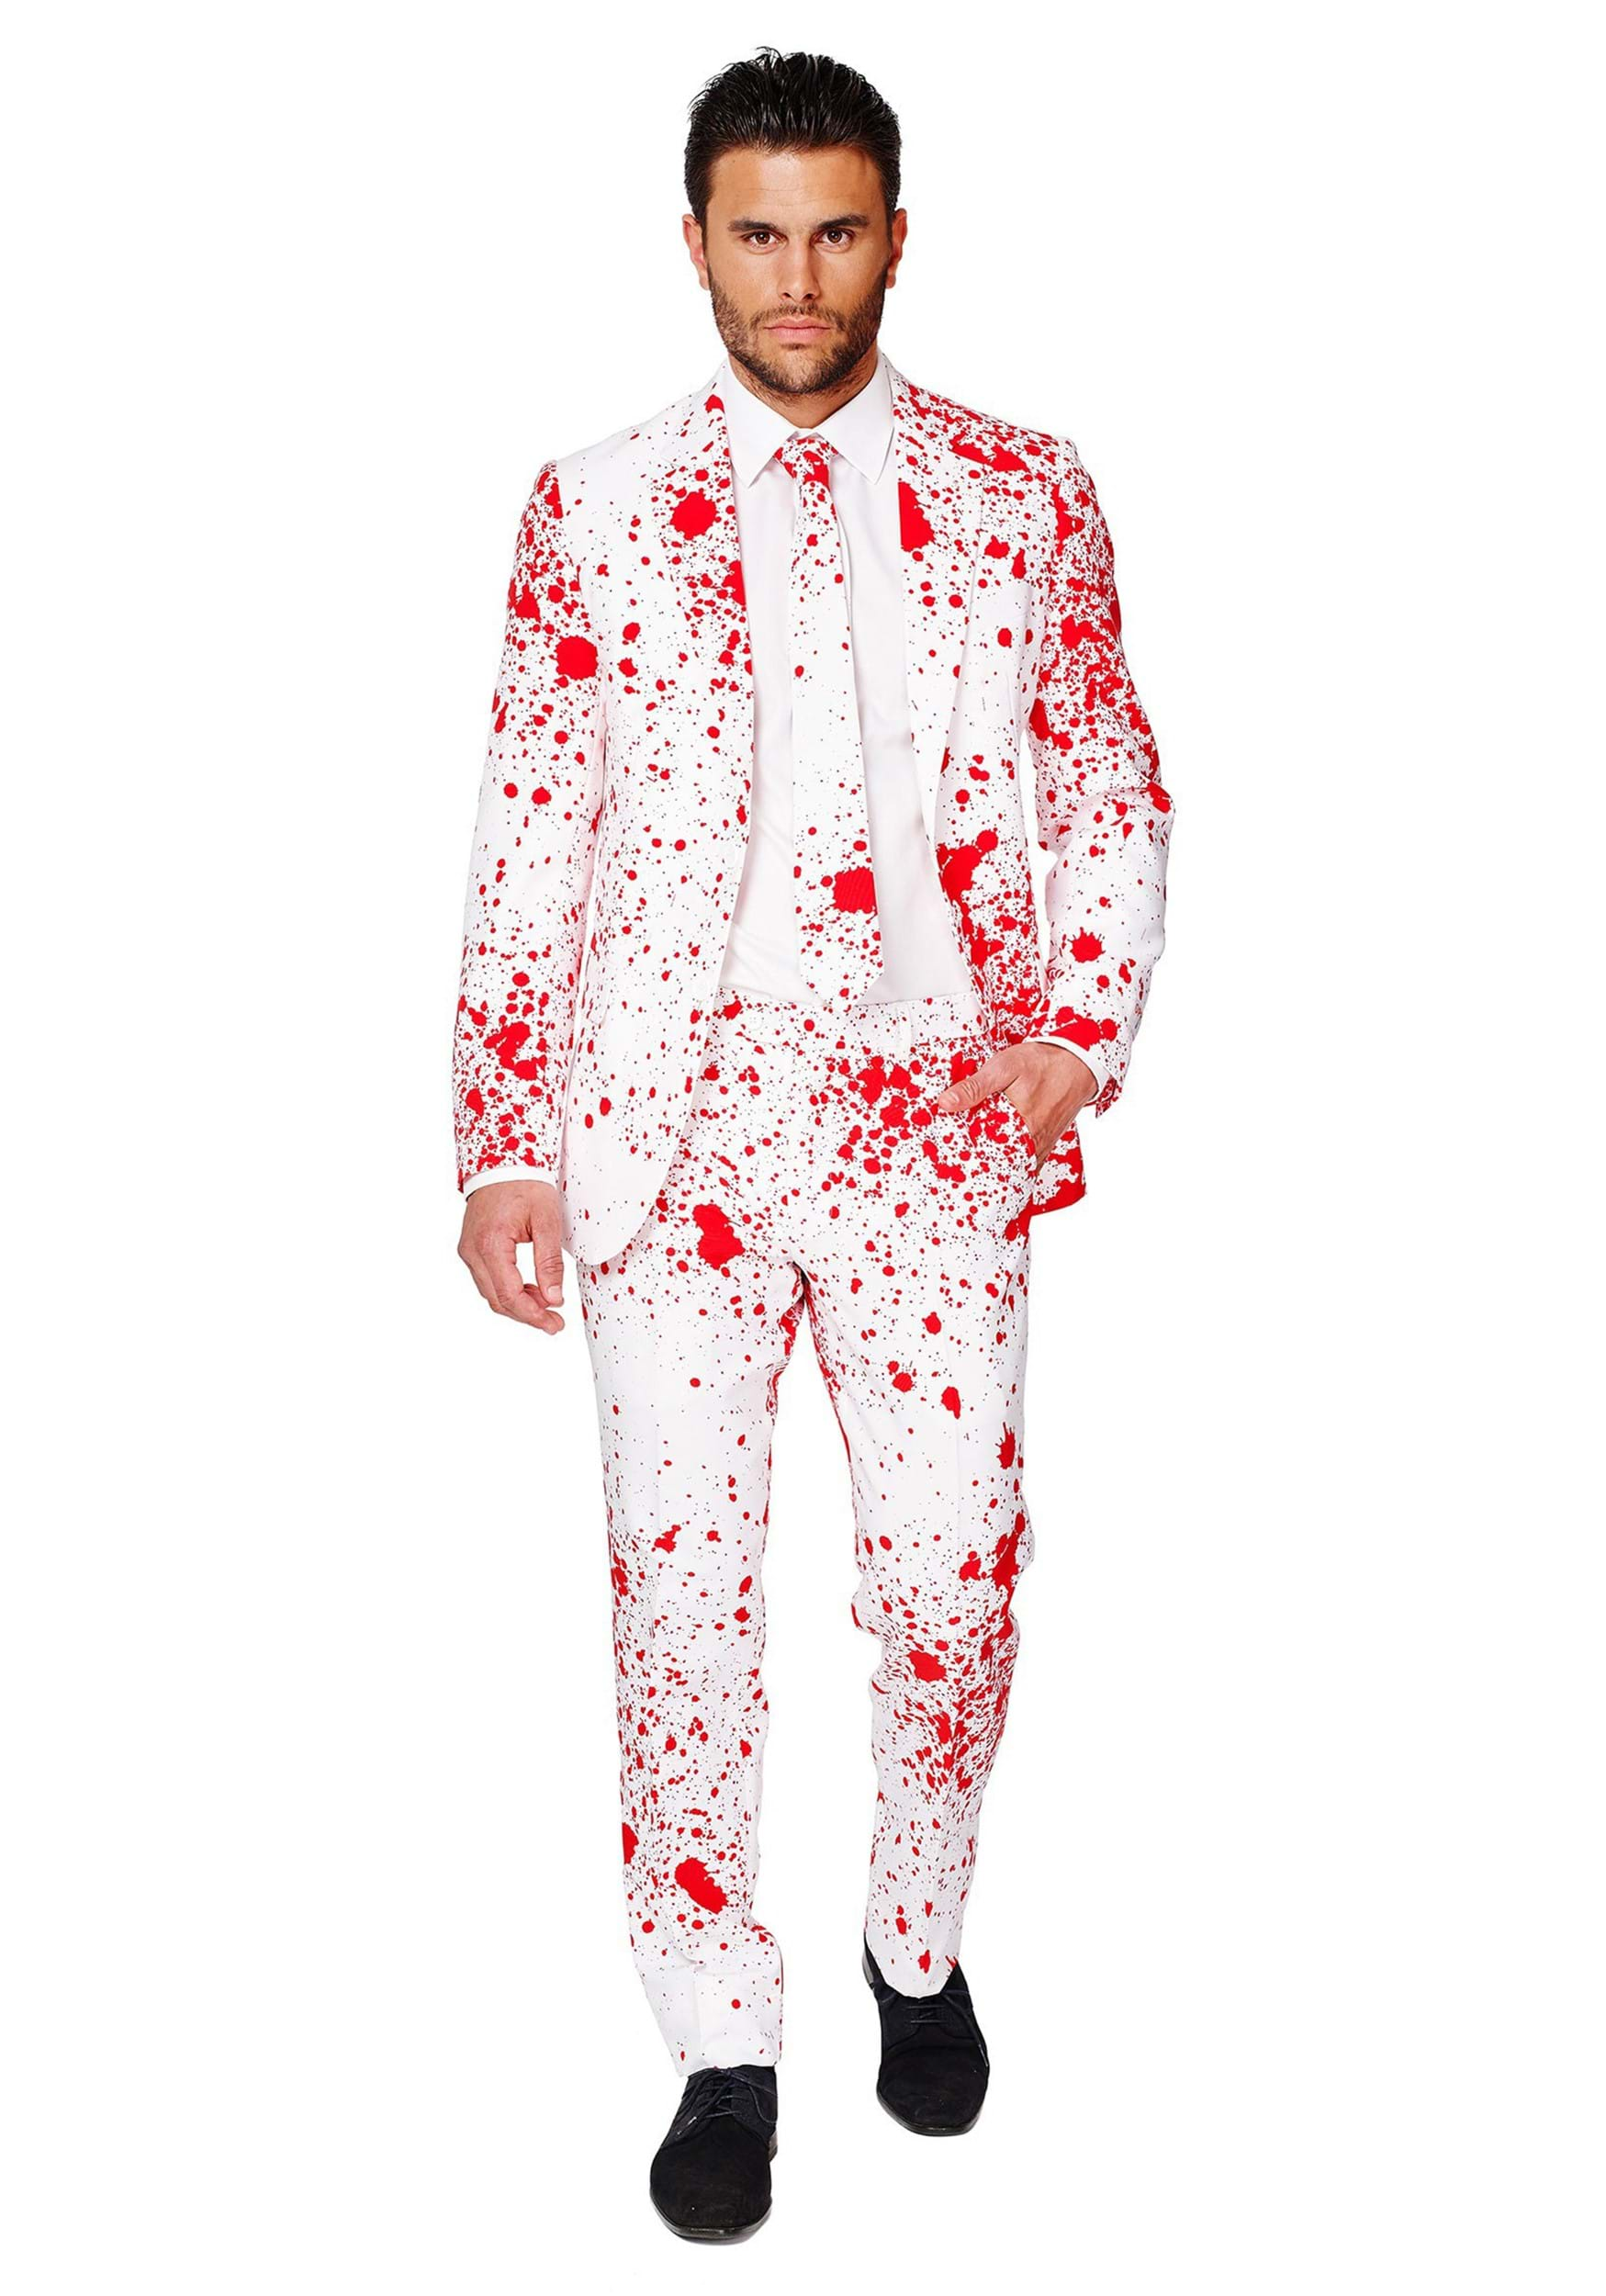 277388bebf8451 Opposuits Bloody Suit for Men